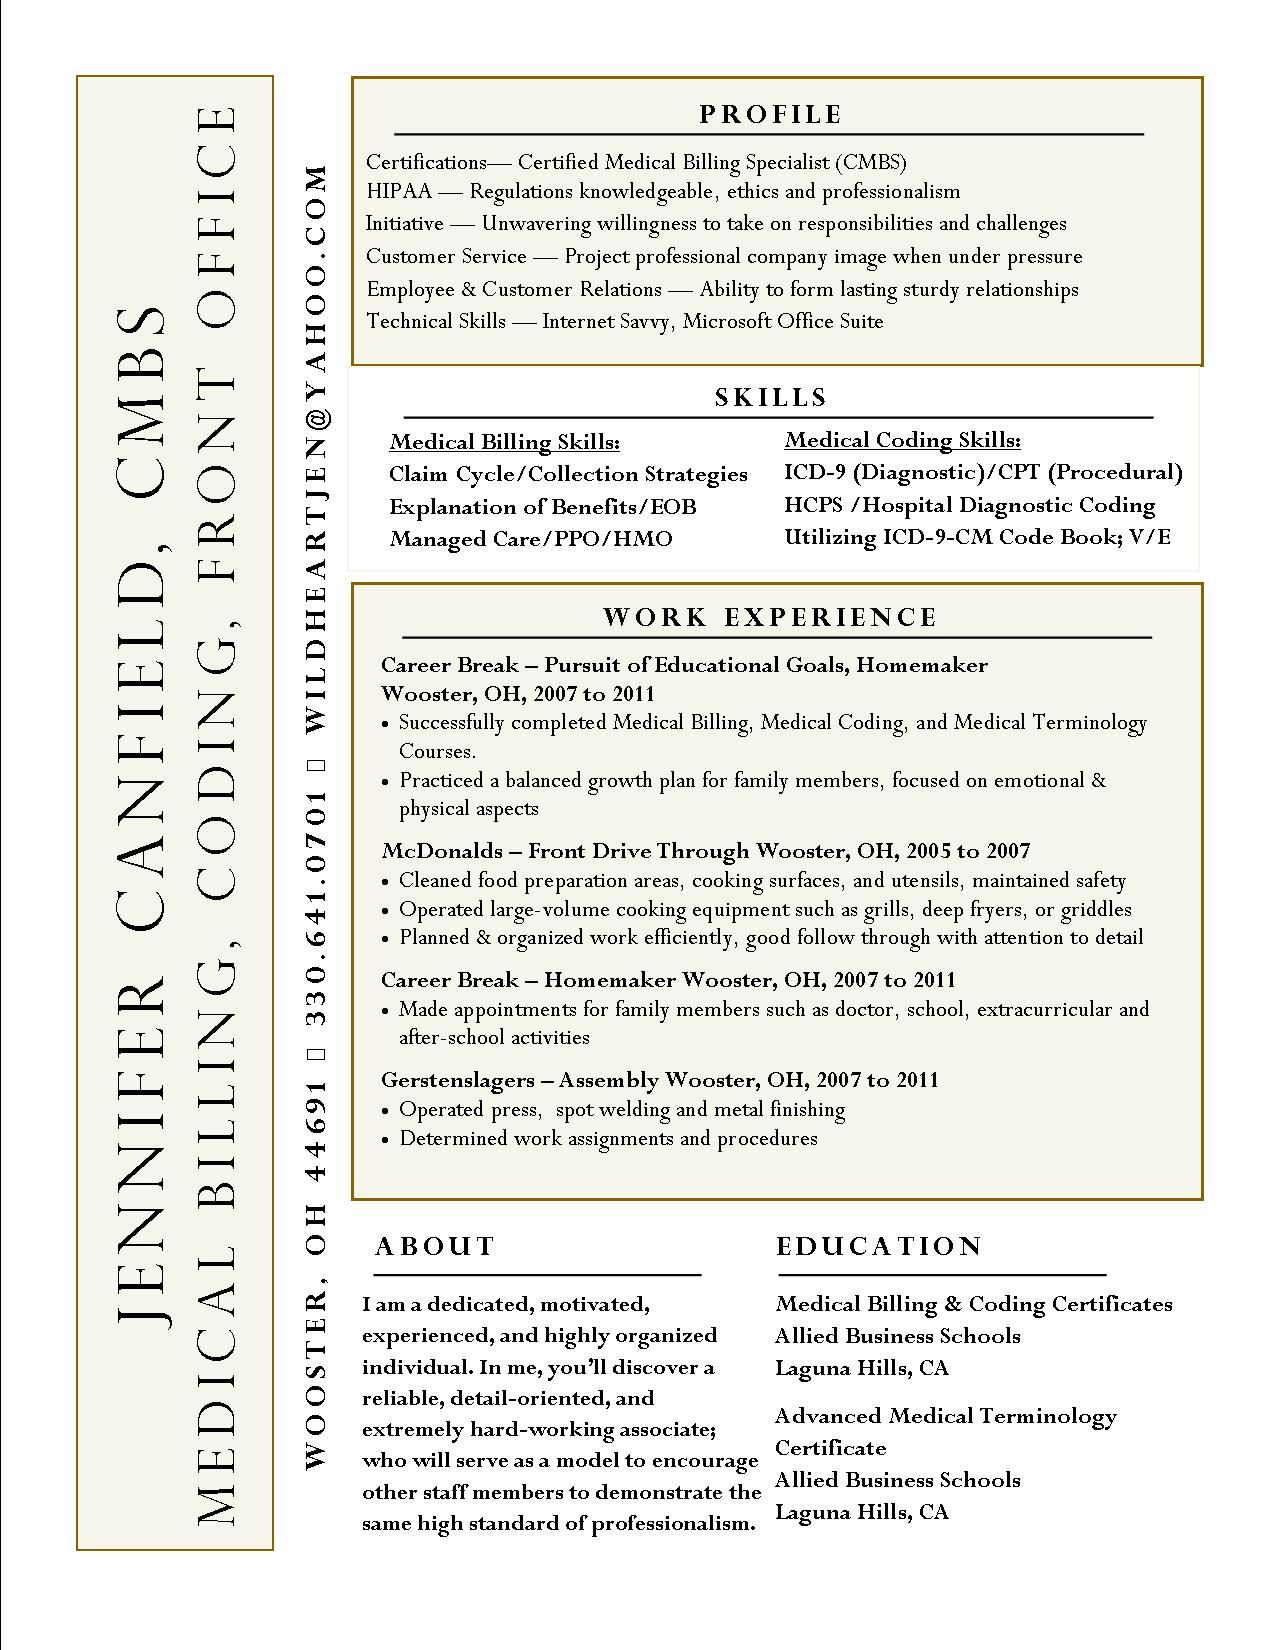 Interesting resume idea not sure i like the name on the side certified medical coder resume extravagant medical billing and coding resume 16 interesting 1betcityfo Gallery